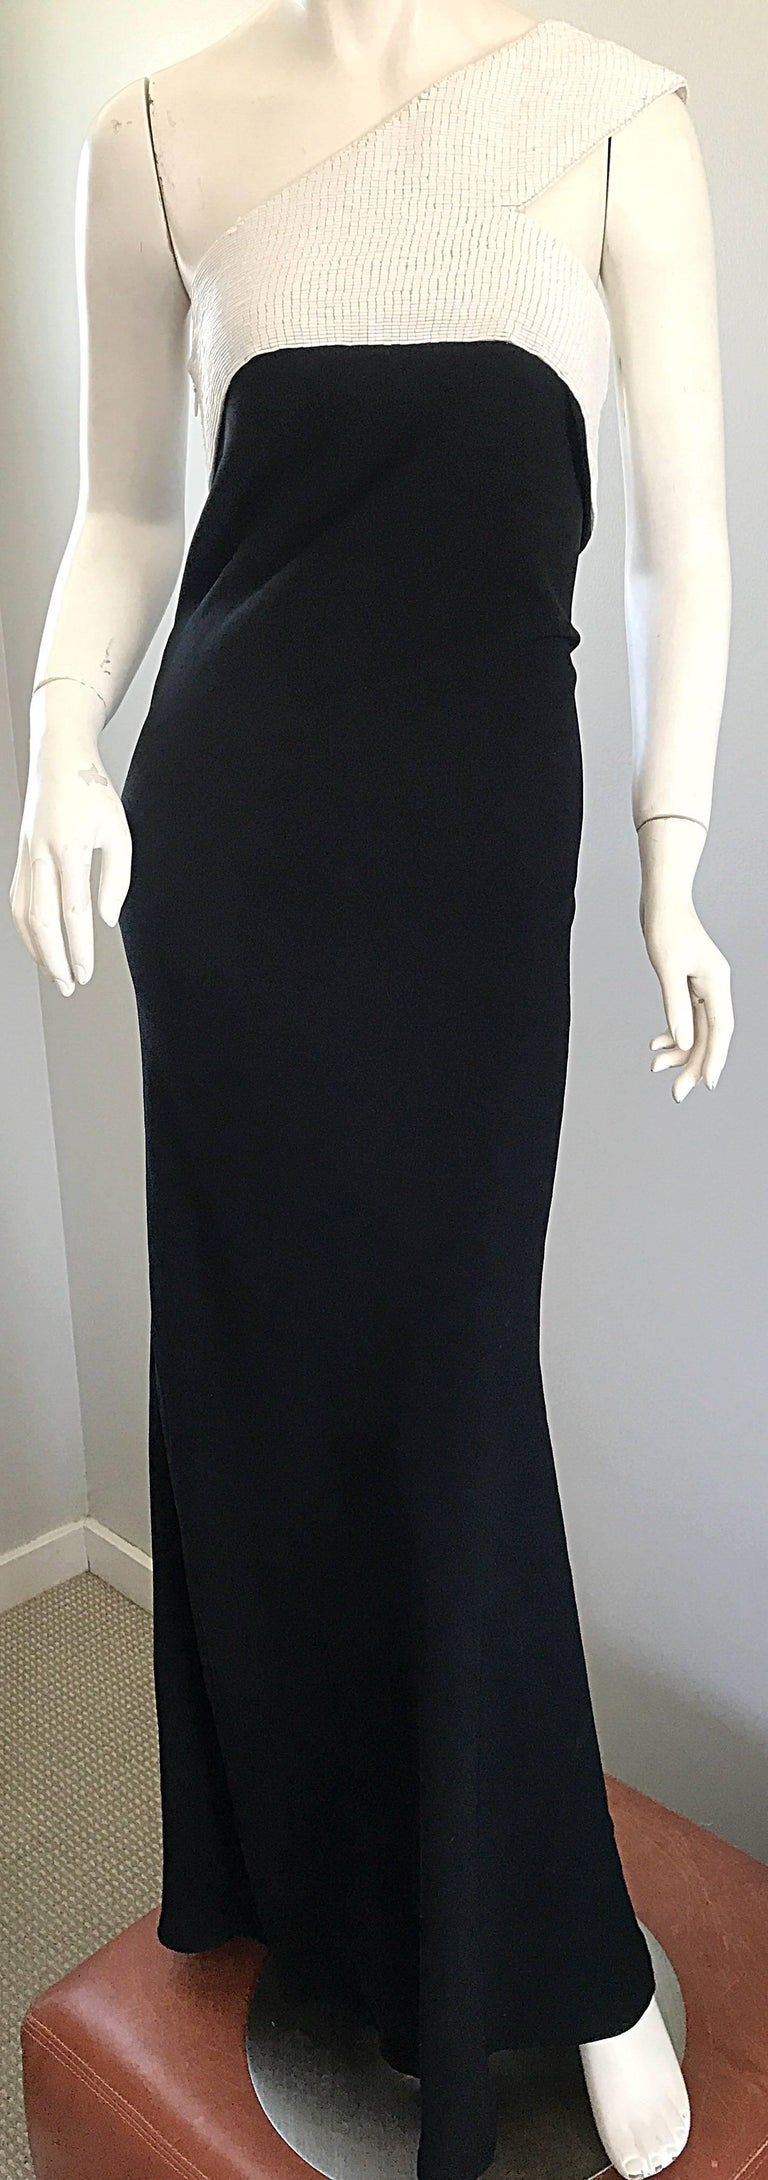 Vintage Jackie Rogers 1990s Black and White One Shoulder Beaded 90s Evening Gown 5